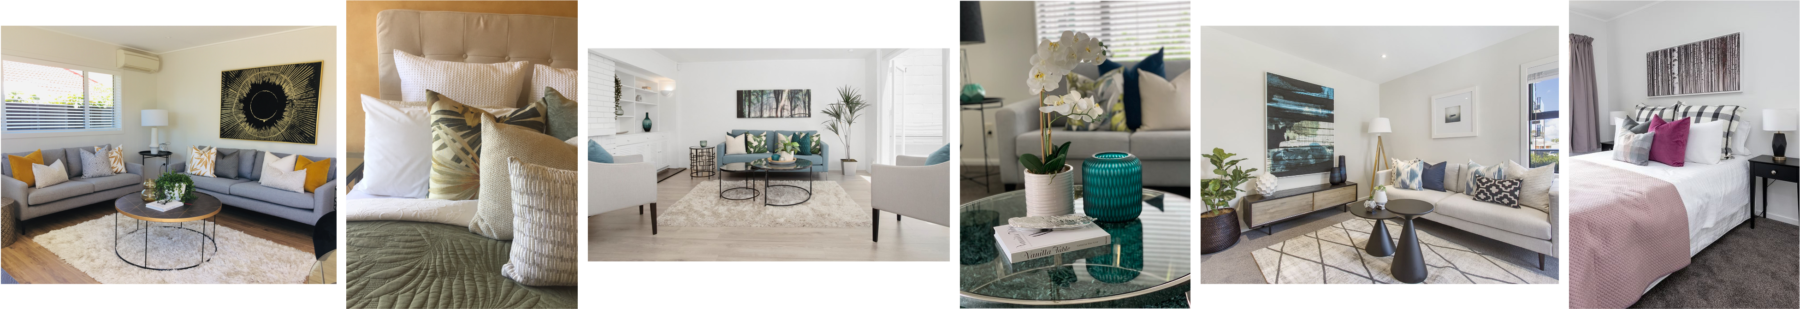 home staging modern contemporary colourful home styling bedrooms and lounges with designer accessories